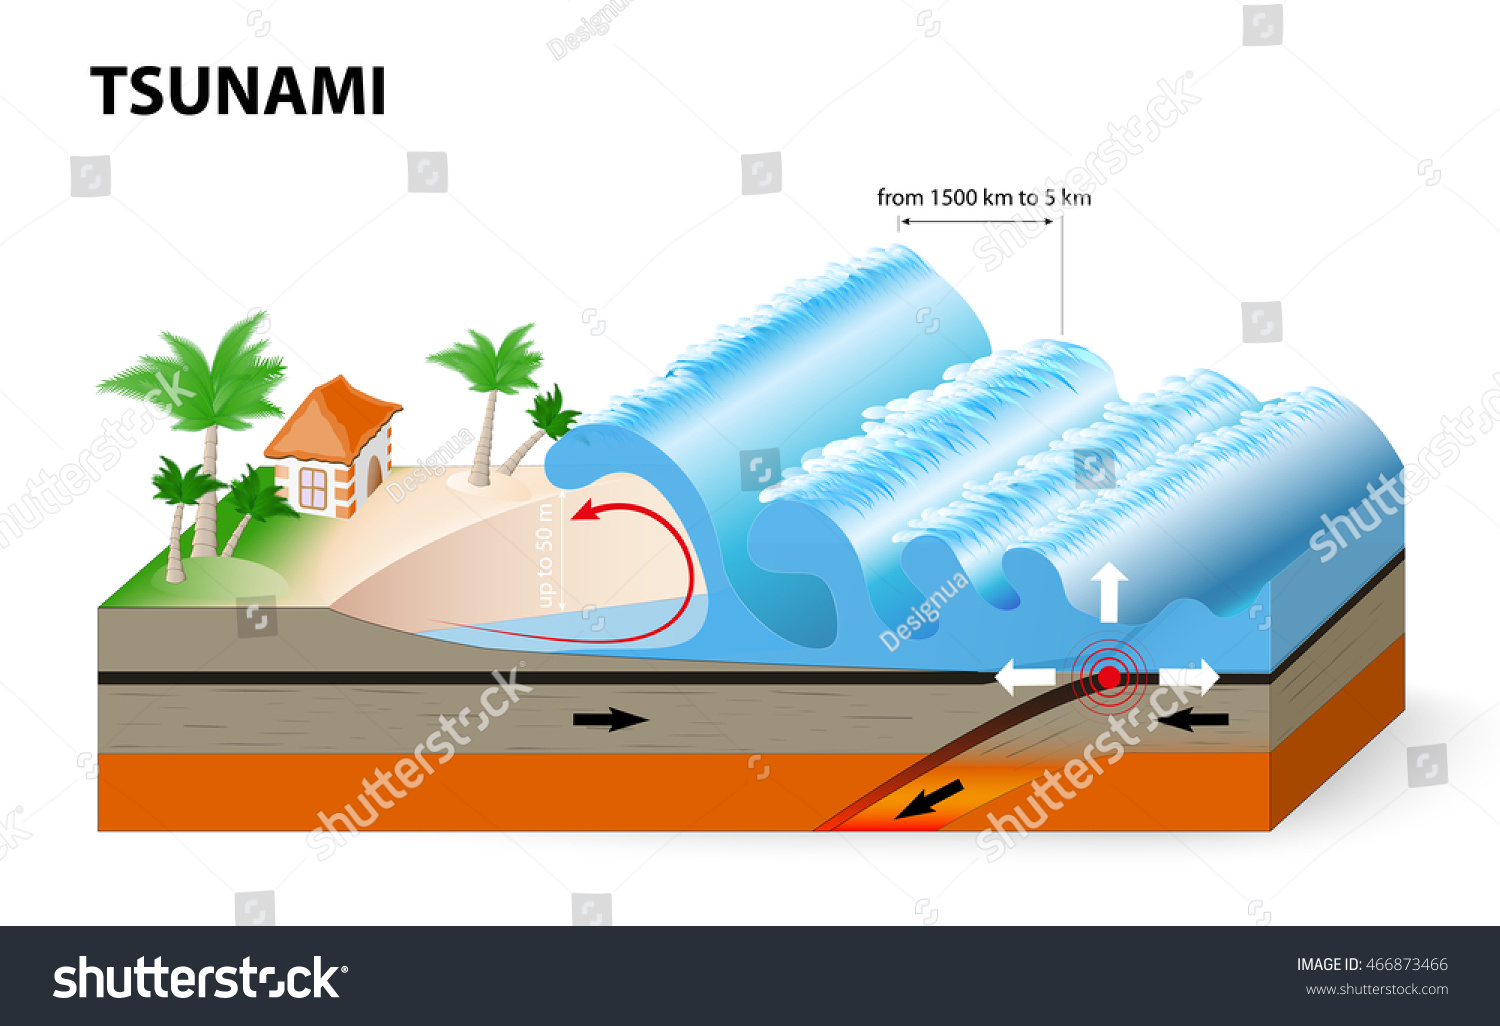 How Fast Can A Tsunami Wave Travel